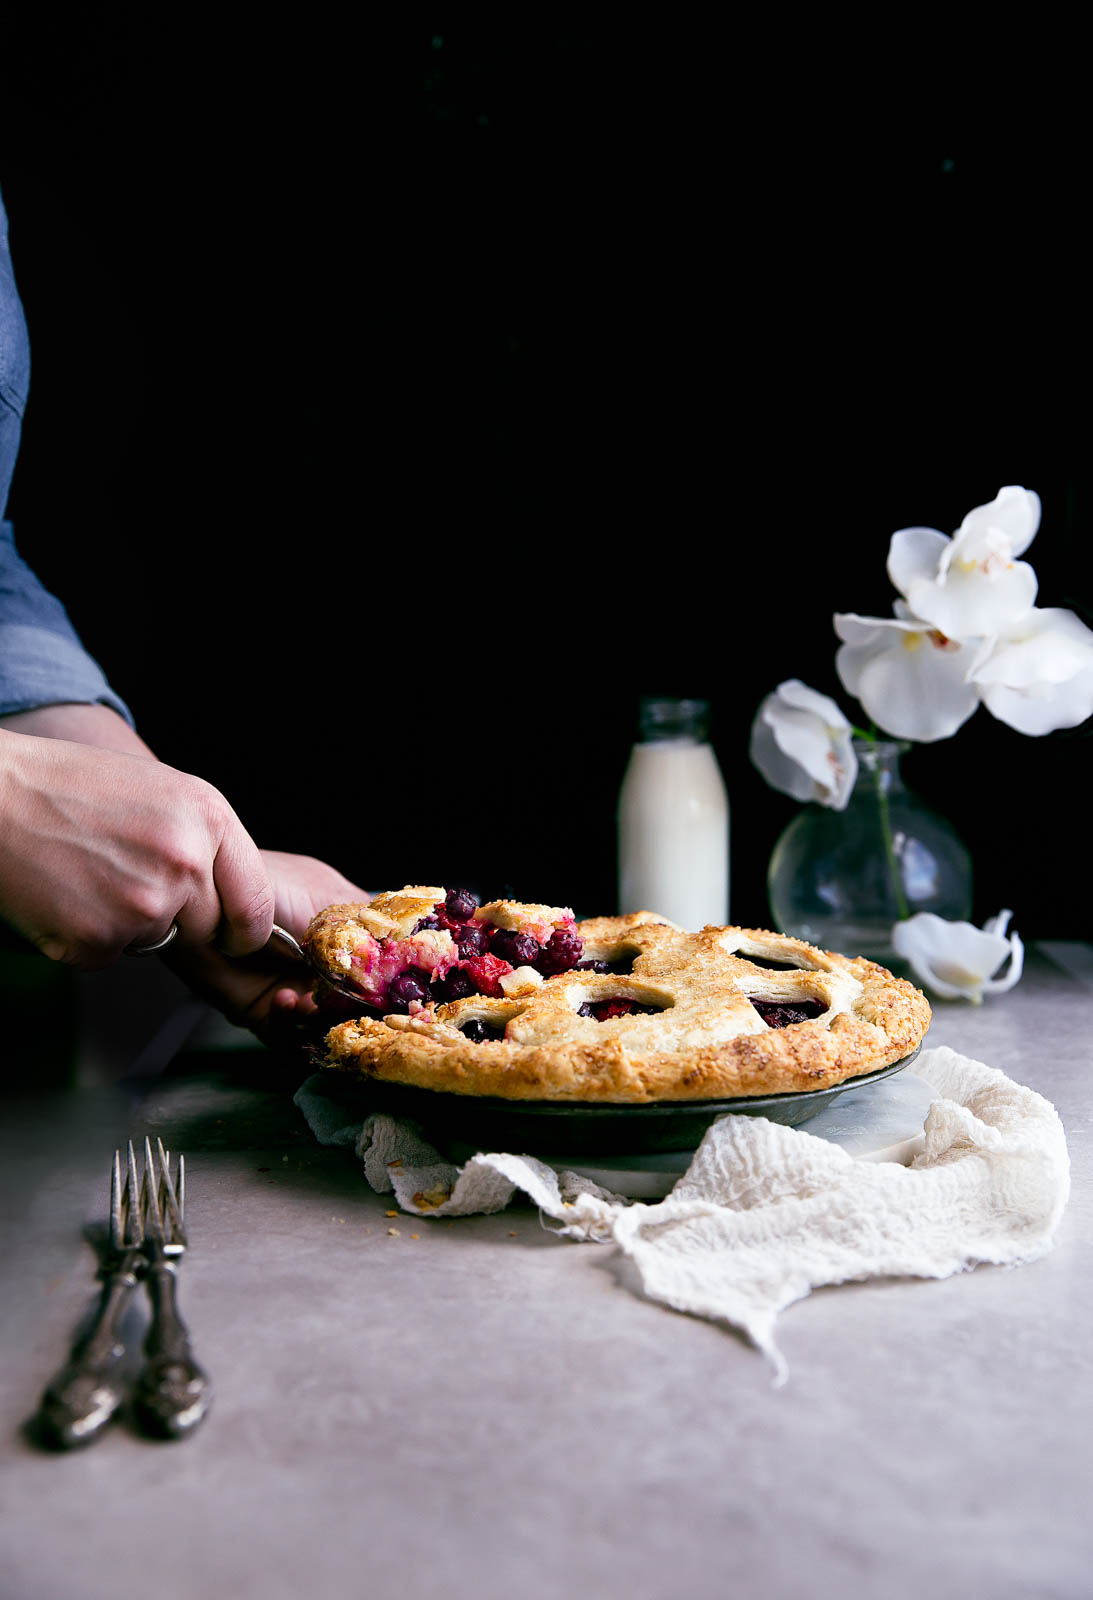 The prettiest pie there ever was: this quadruple berry bumbleberry pie.